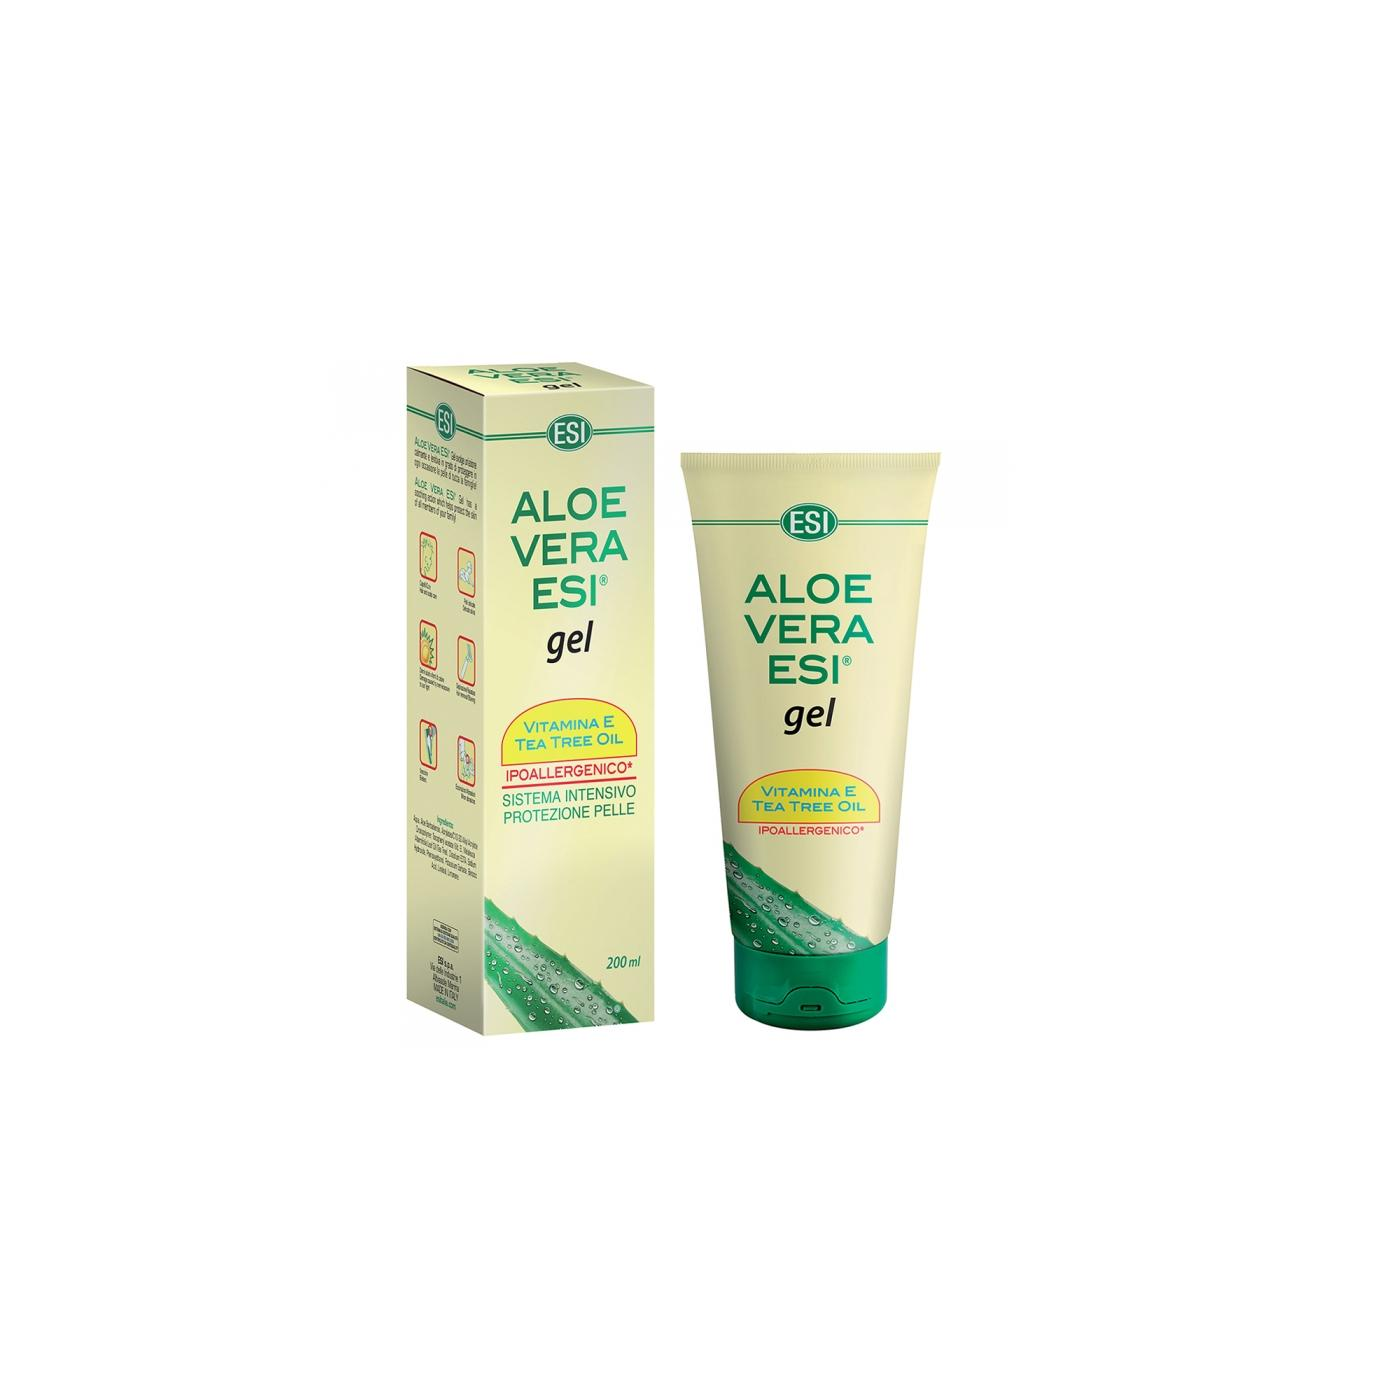 ESI Gel Aloe vera s vitamínem E a tea tree 200 ml